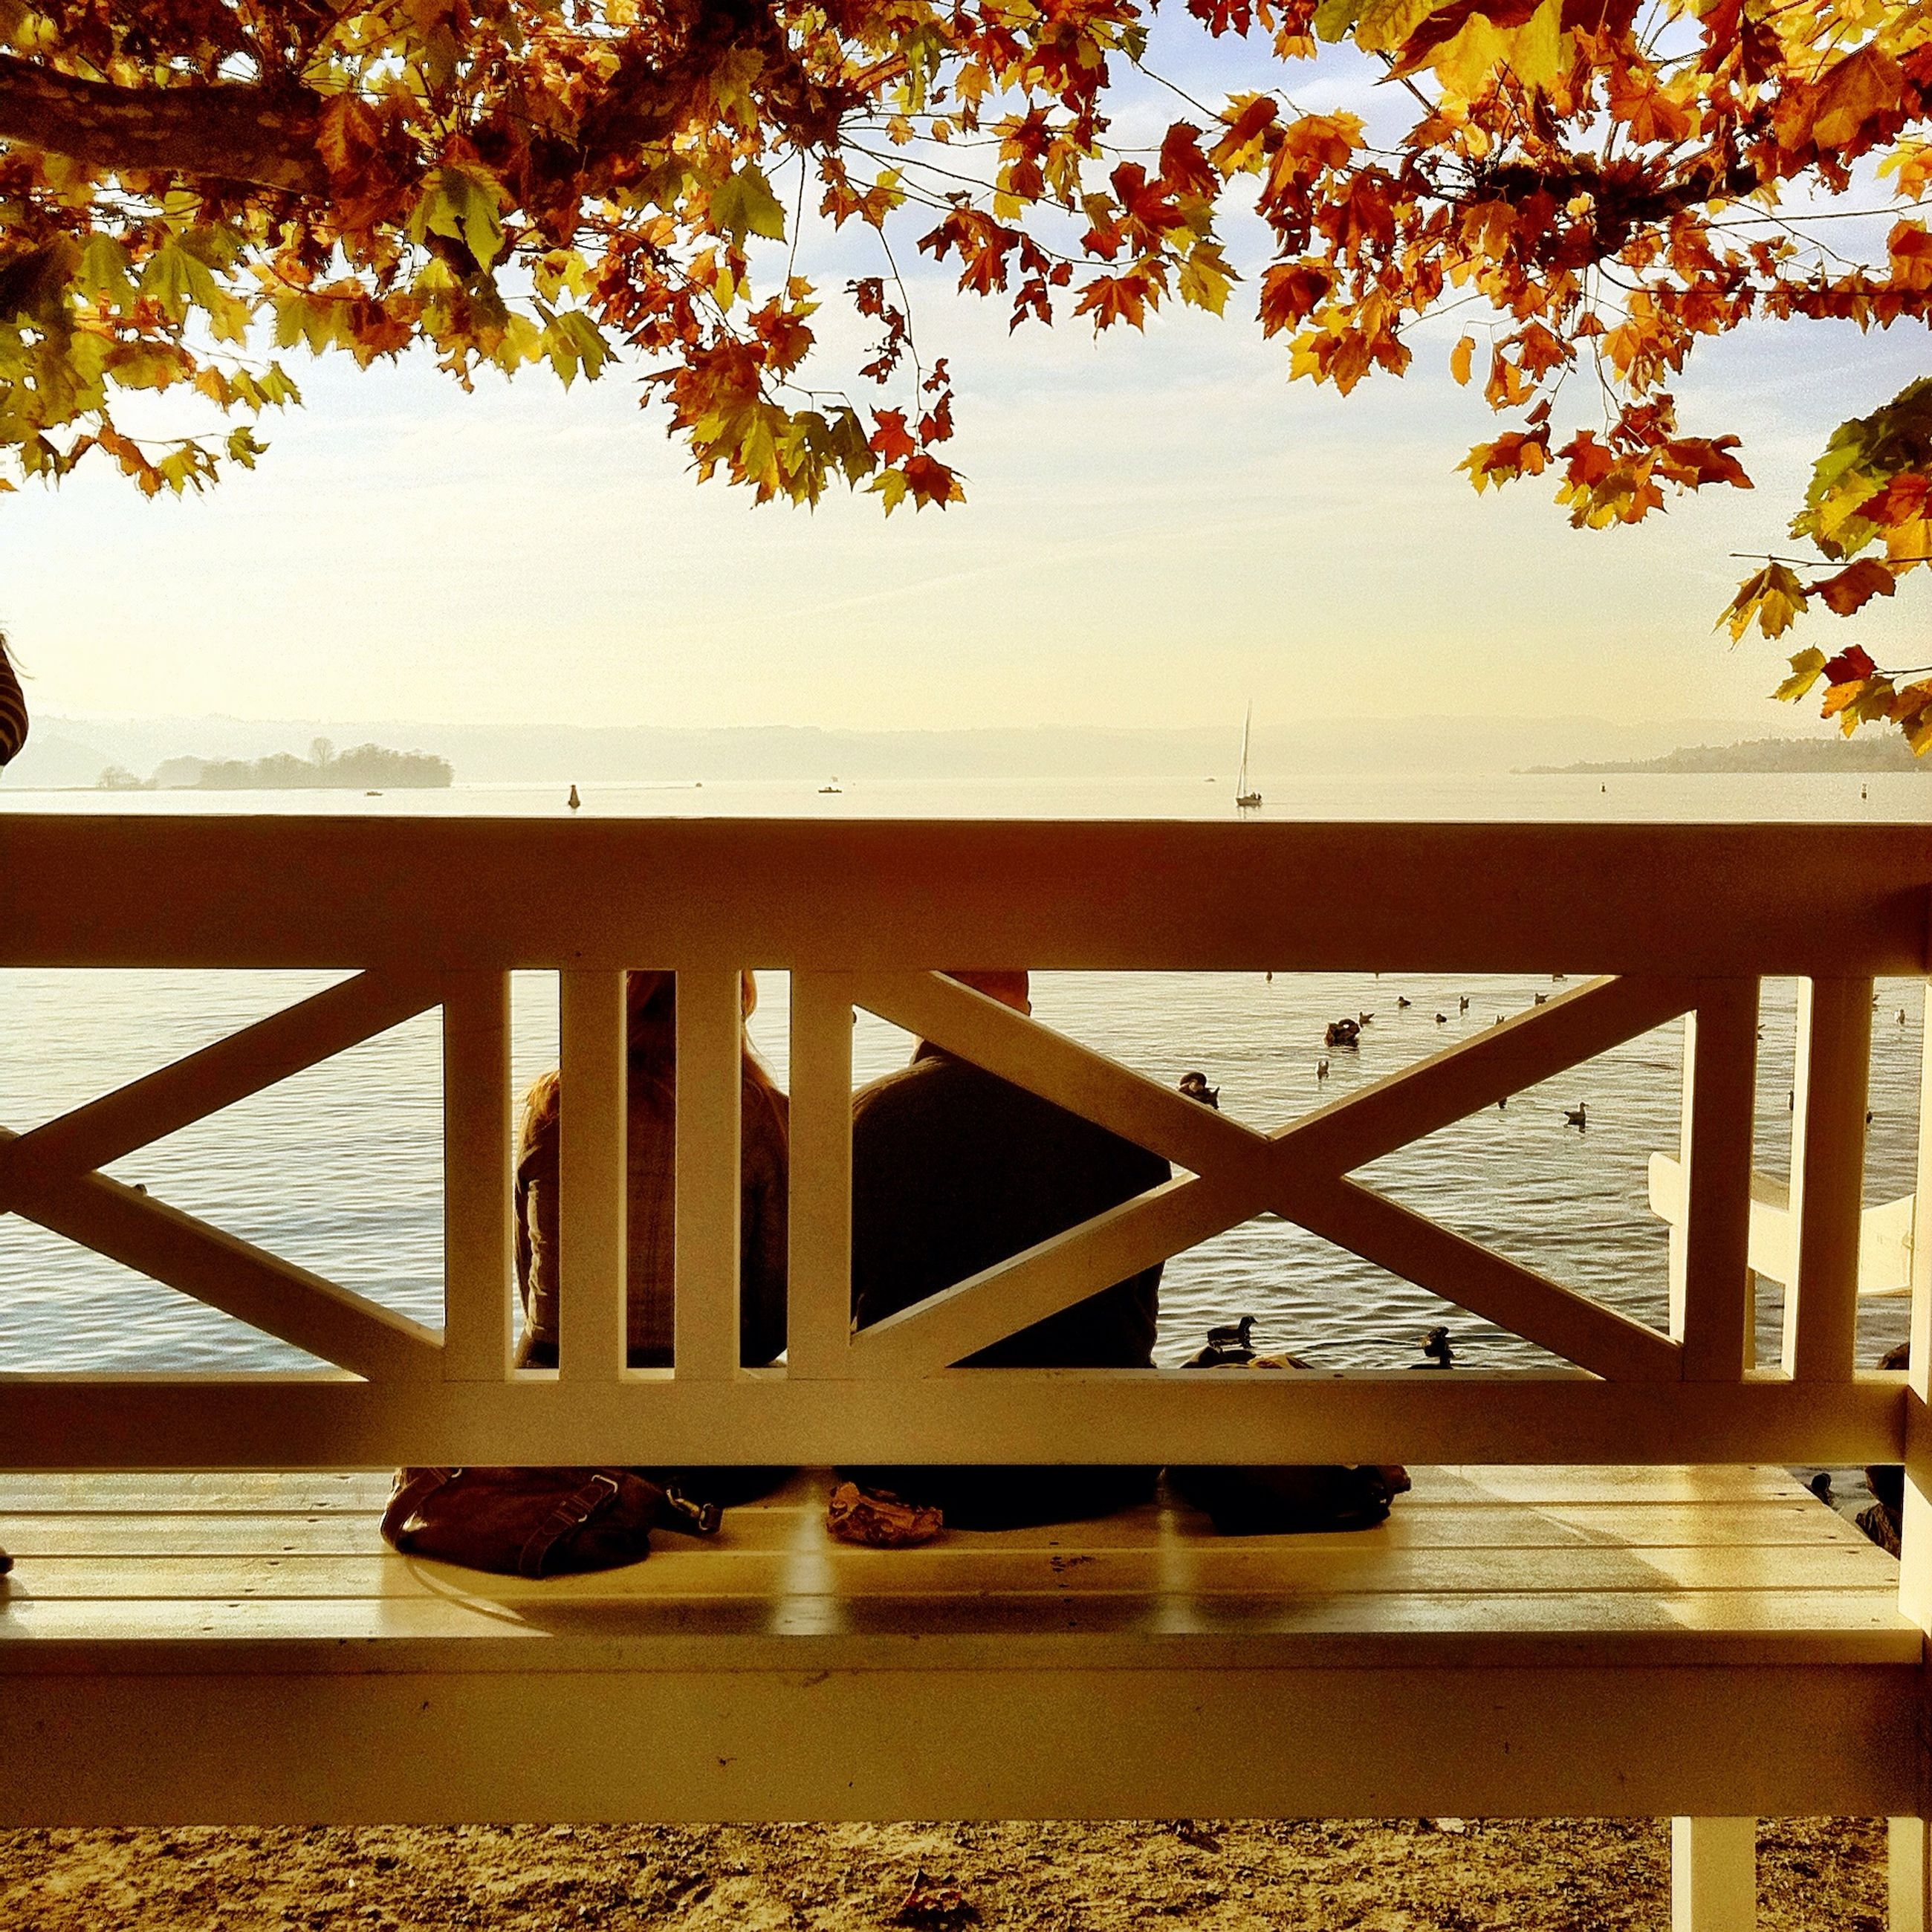 railing, tree, water, wood - material, sea, tranquility, nature, beauty in nature, sunlight, tranquil scene, scenics, pier, branch, wooden, day, bench, outdoors, sky, growth, shadow